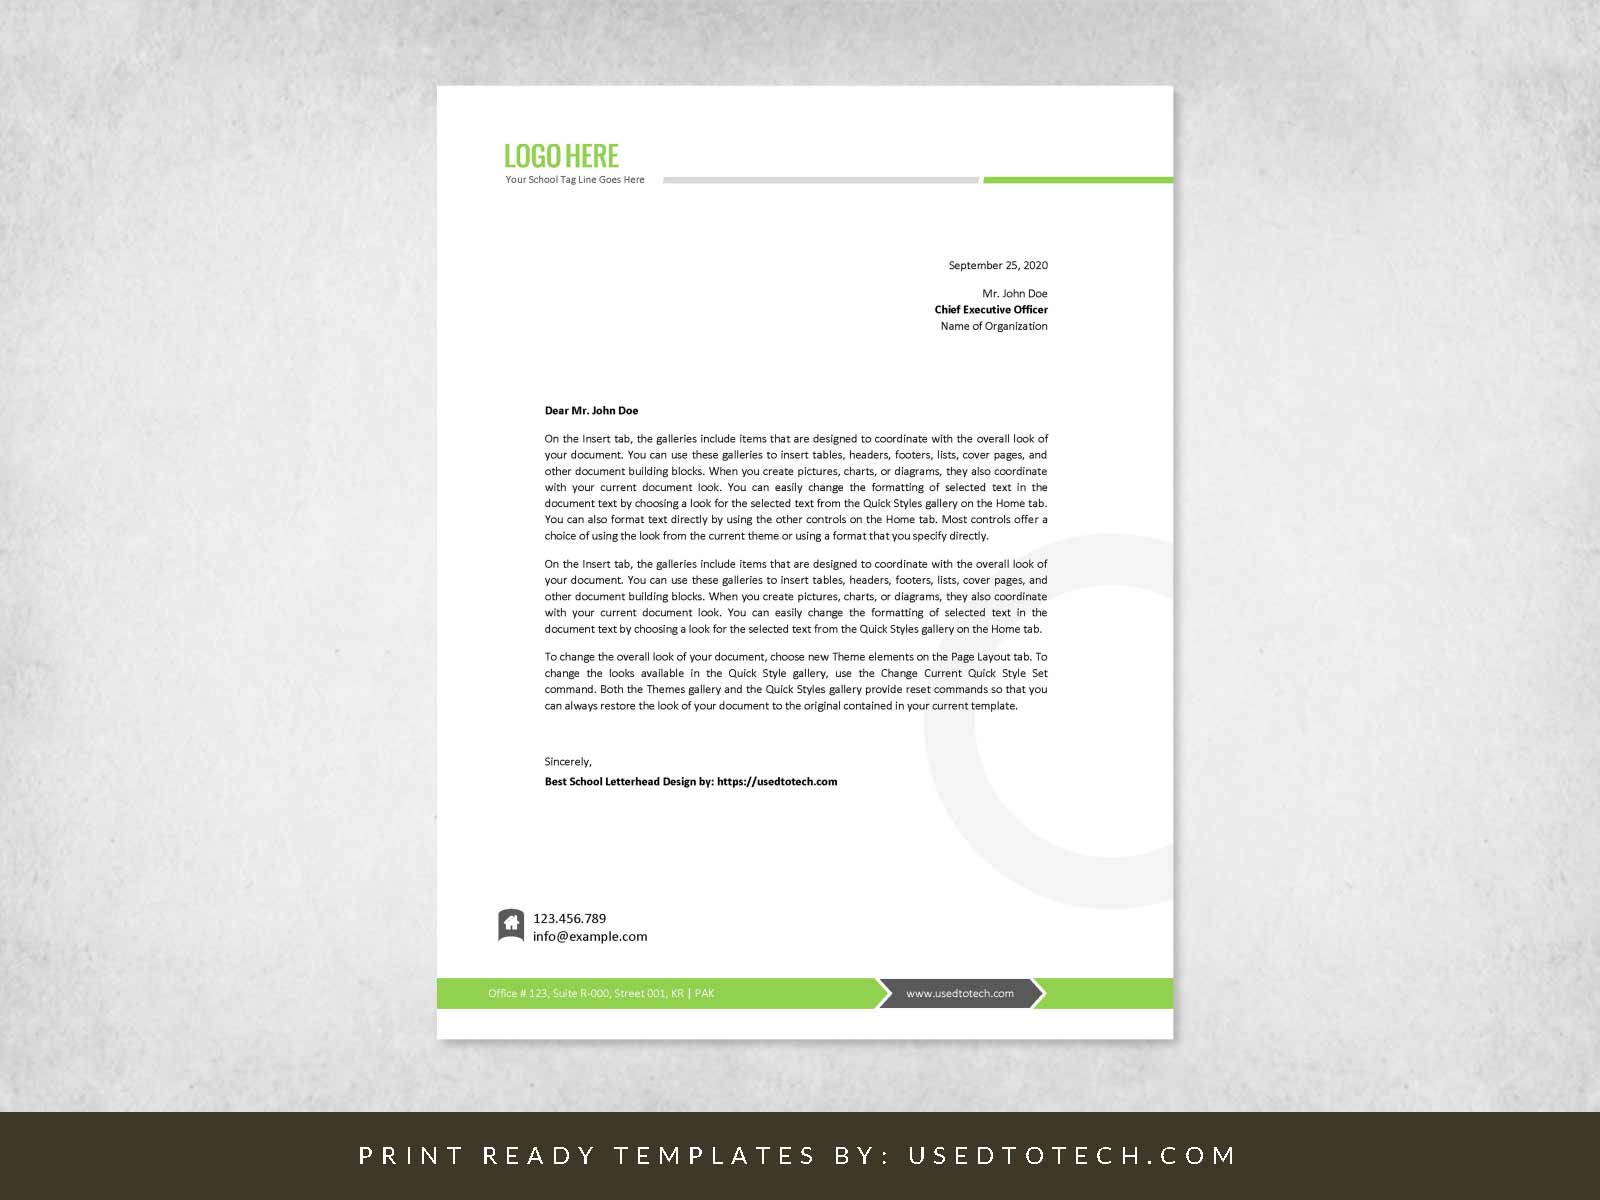 Free best school letterhead in Word